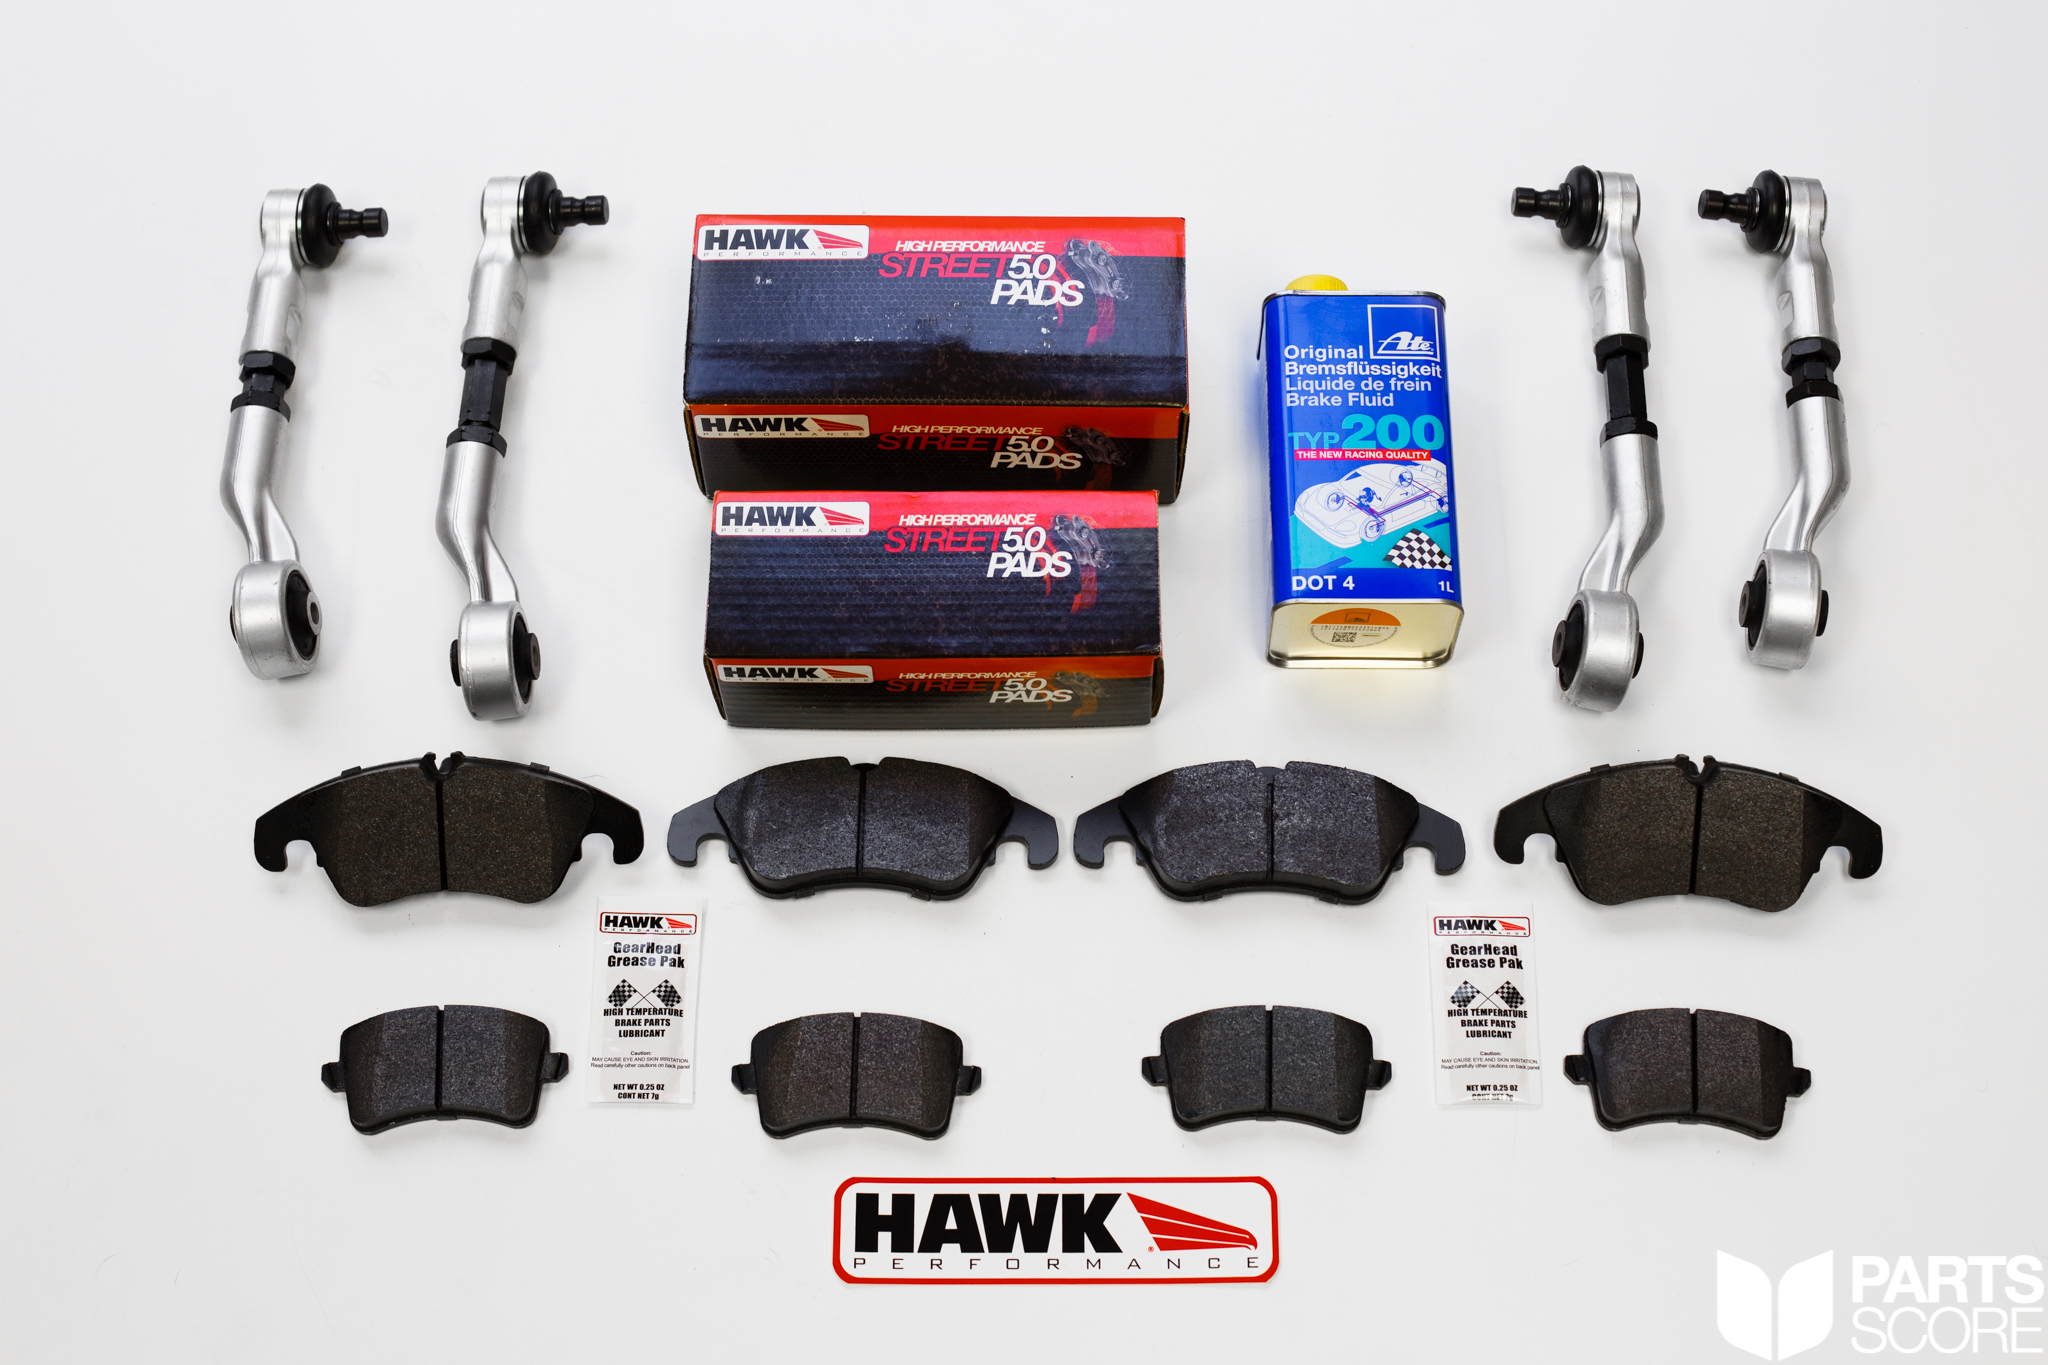 parts score, partsscore, audi, s4, Adjustable Upper Control Arms, spc control arms, spc, spc audi, ecs tuning, audis4, audis, control arms, camber, caster, racecar, performance, audirs, b8, b8.5, b8 s4, b8.5 s4, stance, slammed, coilovers, springs, static, airride, air ride, giac, stage 2, giac stage 2, hawk, hawk hps, hawk pads, brake pads, hawk brake pads, hawk performance, brake fluid